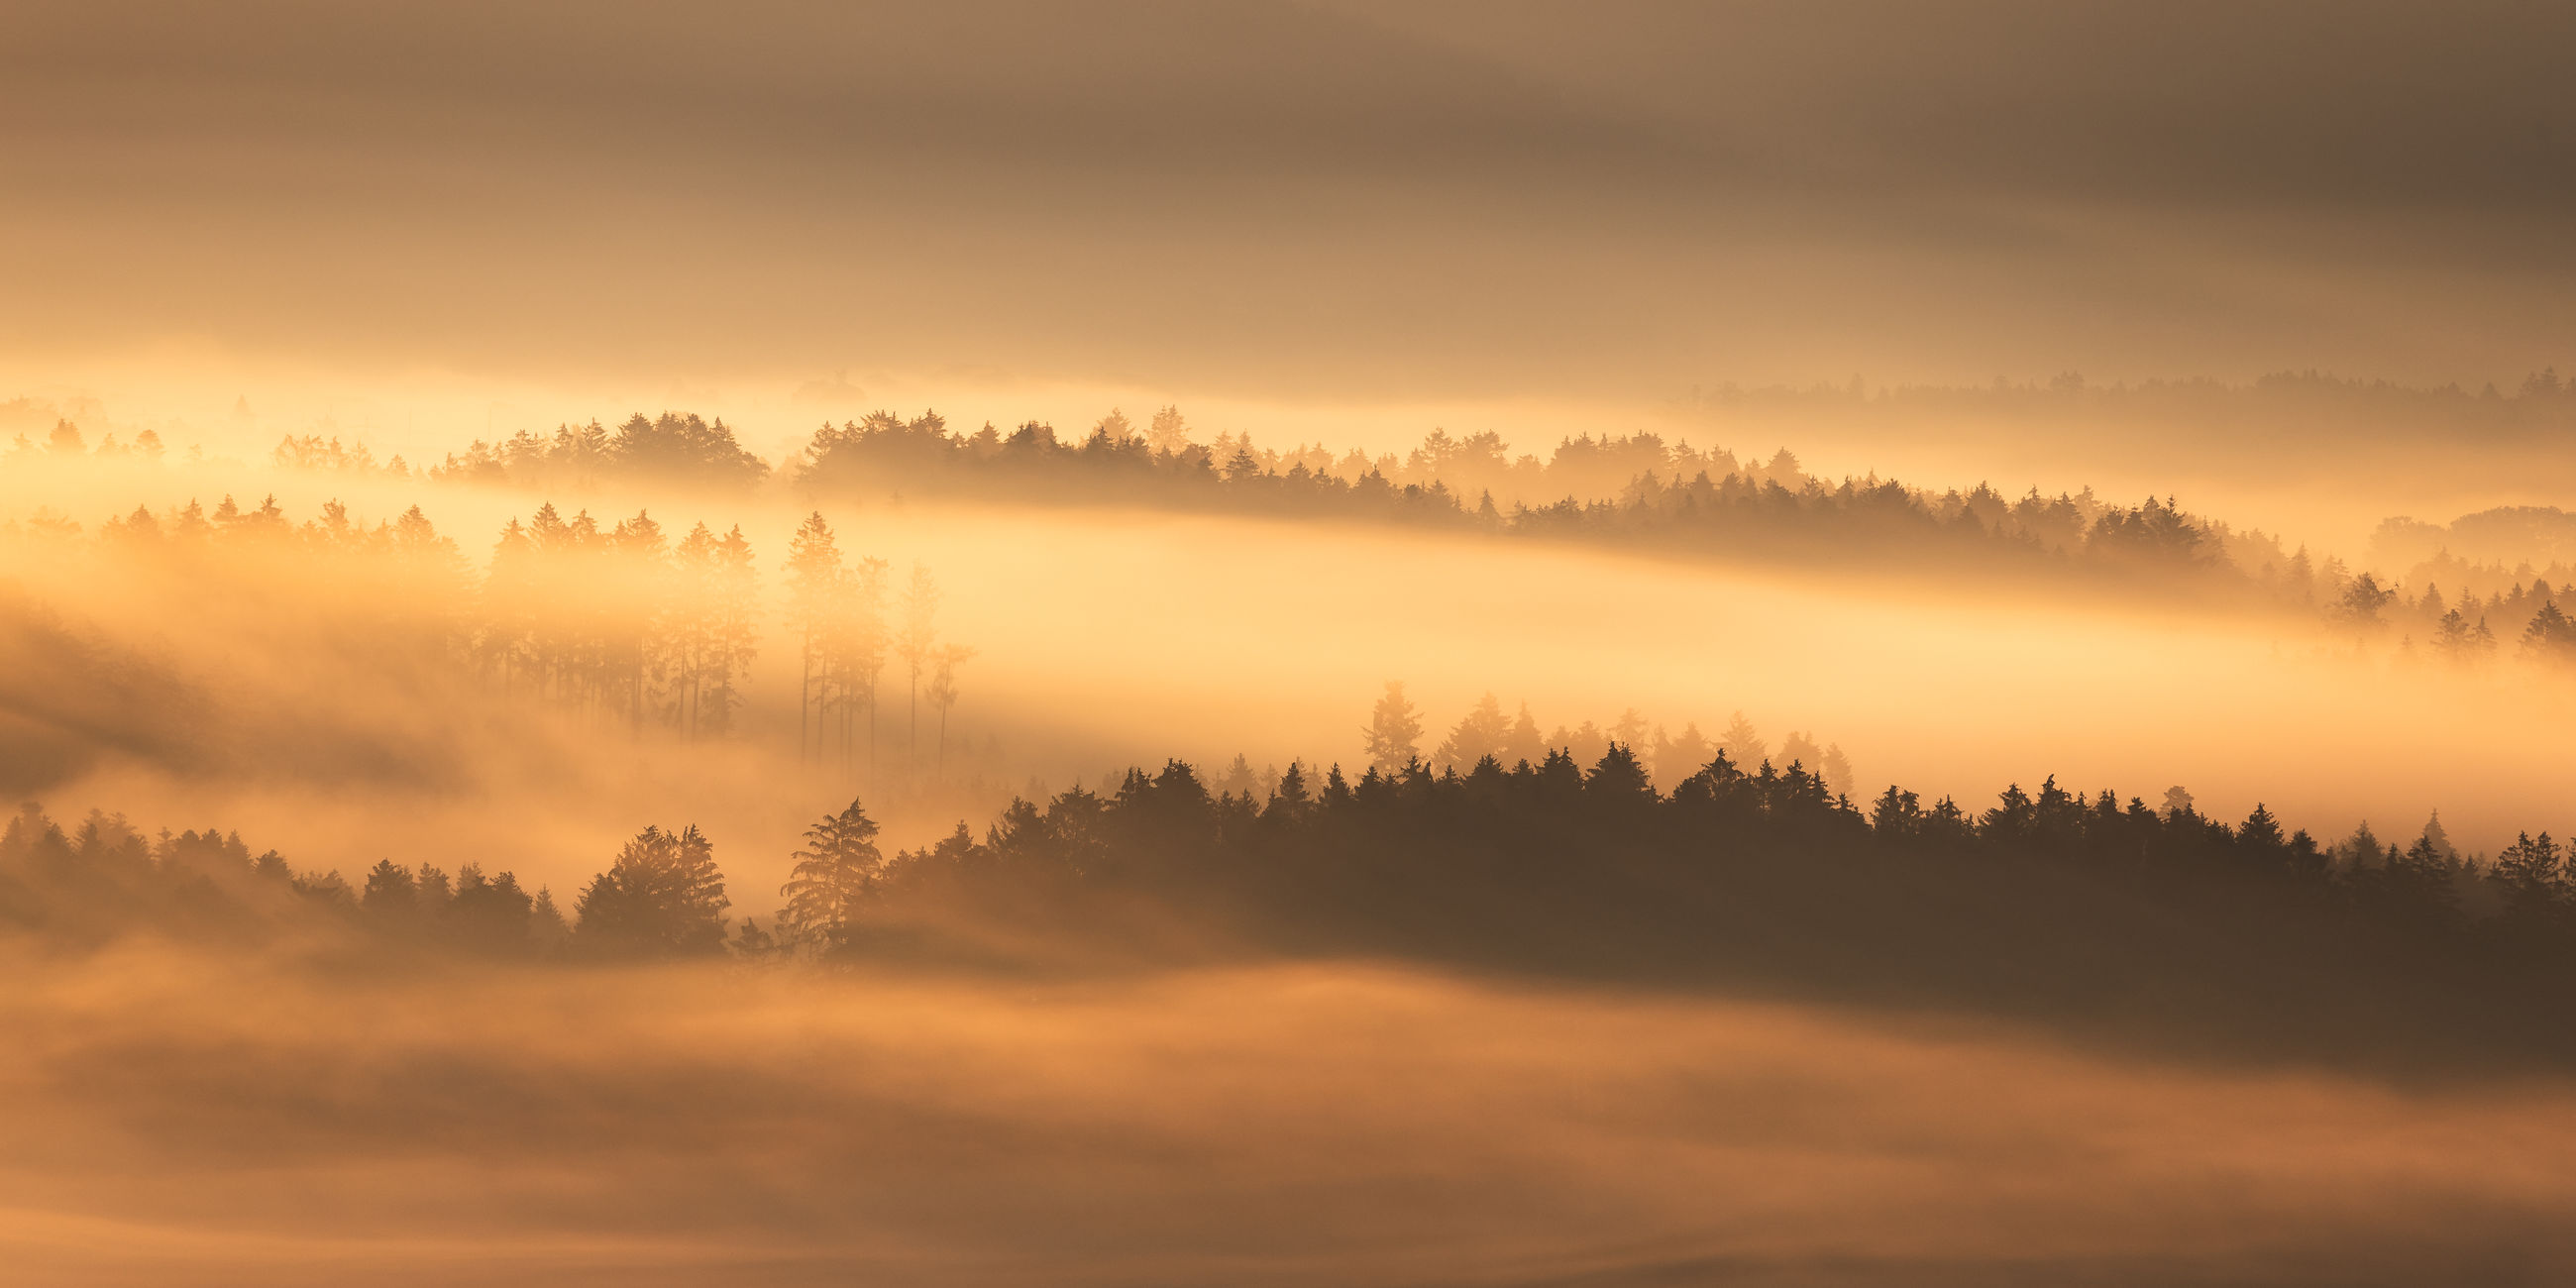 fog, environment, tree, sky, landscape, scenics - nature, beauty in nature, plant, morning, forest, nature, tranquility, mist, sunrise, sun, land, cloud, tranquil scene, dawn, sunlight, no people, twilight, woodland, idyllic, sunbeam, atmospheric mood, non-urban scene, rural scene, orange color, outdoors, silhouette, autumn, mountain, winter, light - natural phenomenon, copy space, coniferous tree, travel destinations, horizon, travel, cloudscape, dramatic sky, backgrounds, gold, cold temperature, pine tree, panoramic, summer, pinaceae, back lit, field, pine woodland, freshness, social issues, multi colored, red, vibrant color